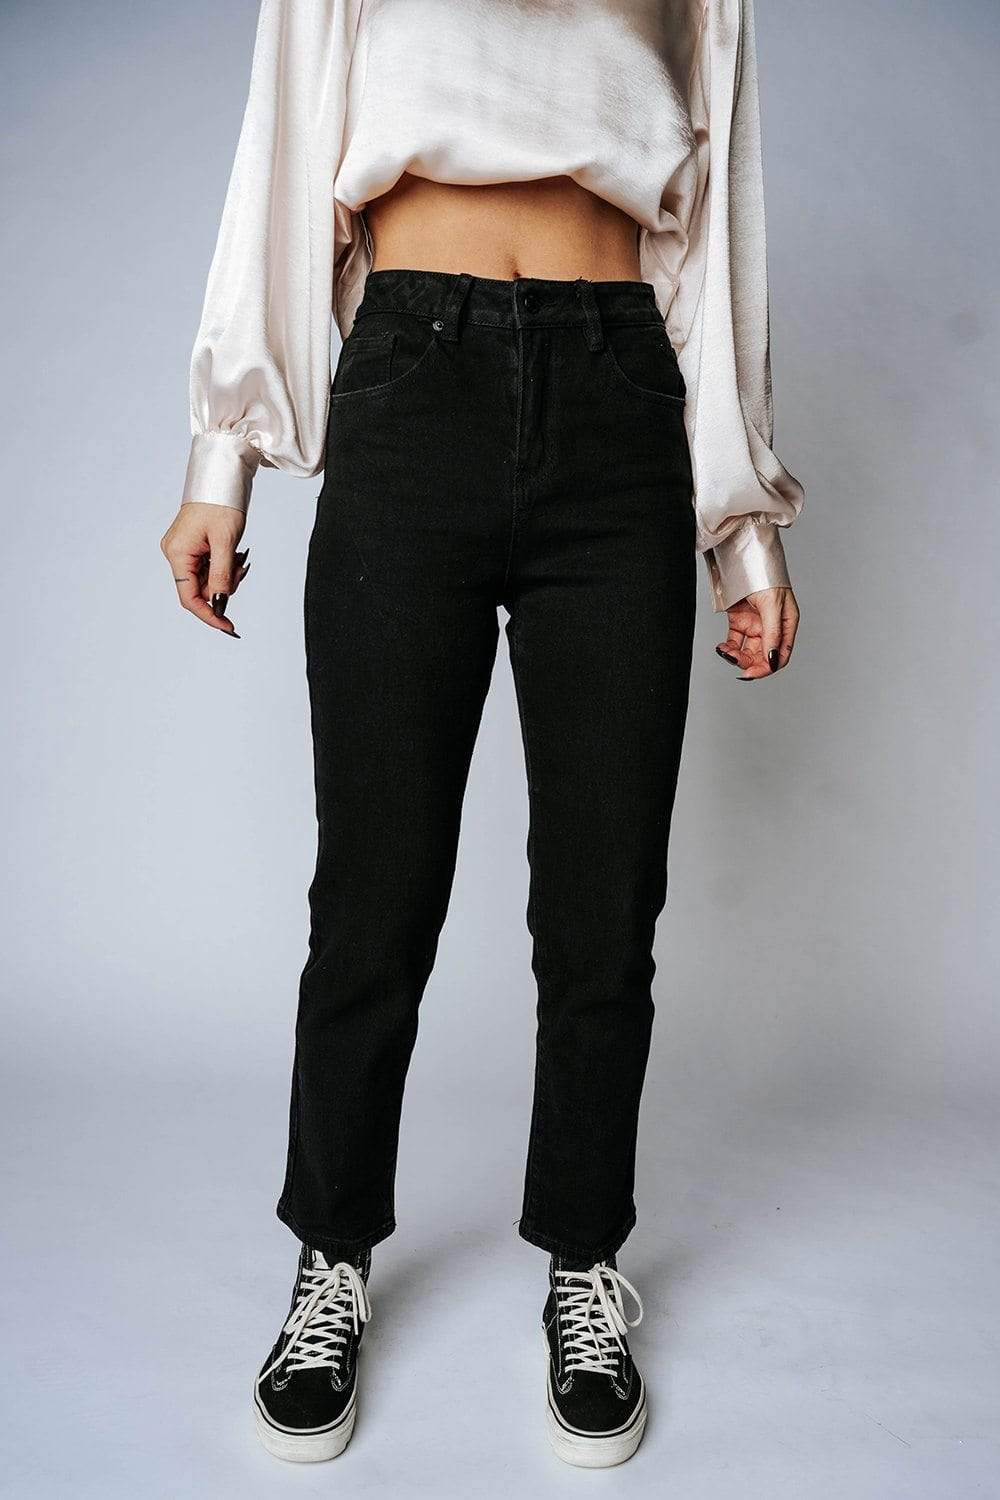 Stay Shameless Straight Leg Jeans Bottom n/a Clad and Cloth